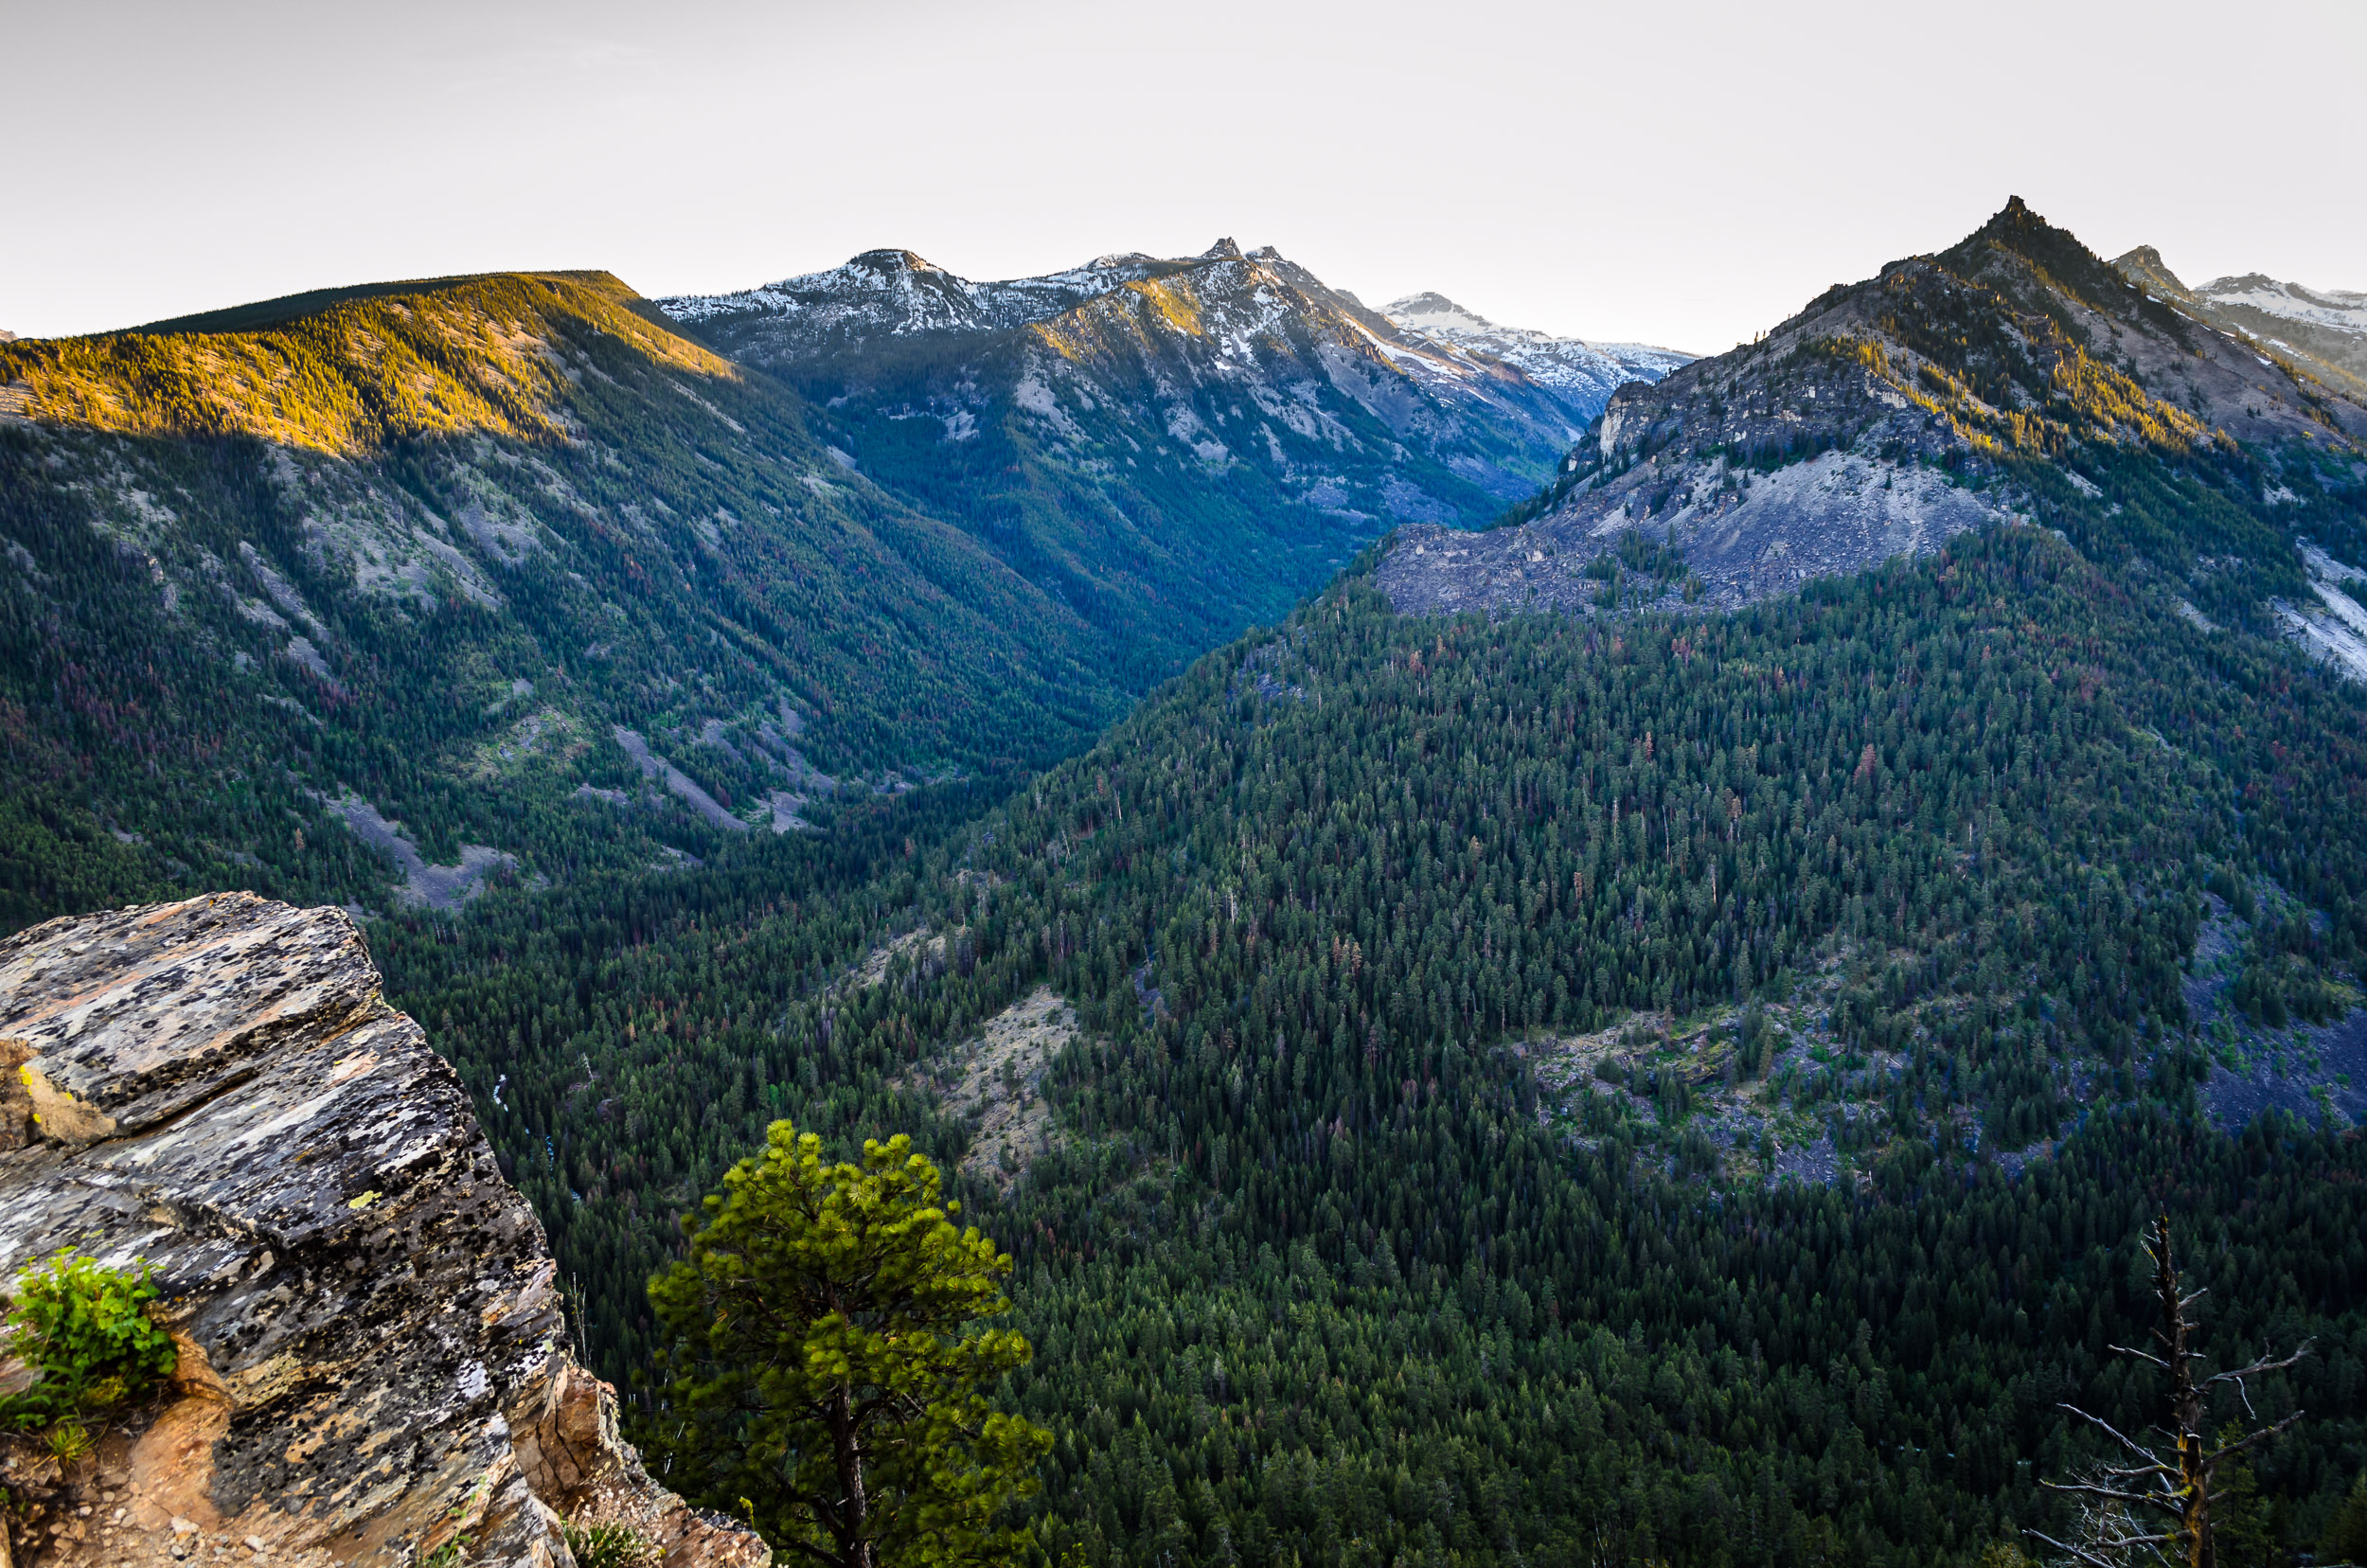 Lolo National Forest, Montana